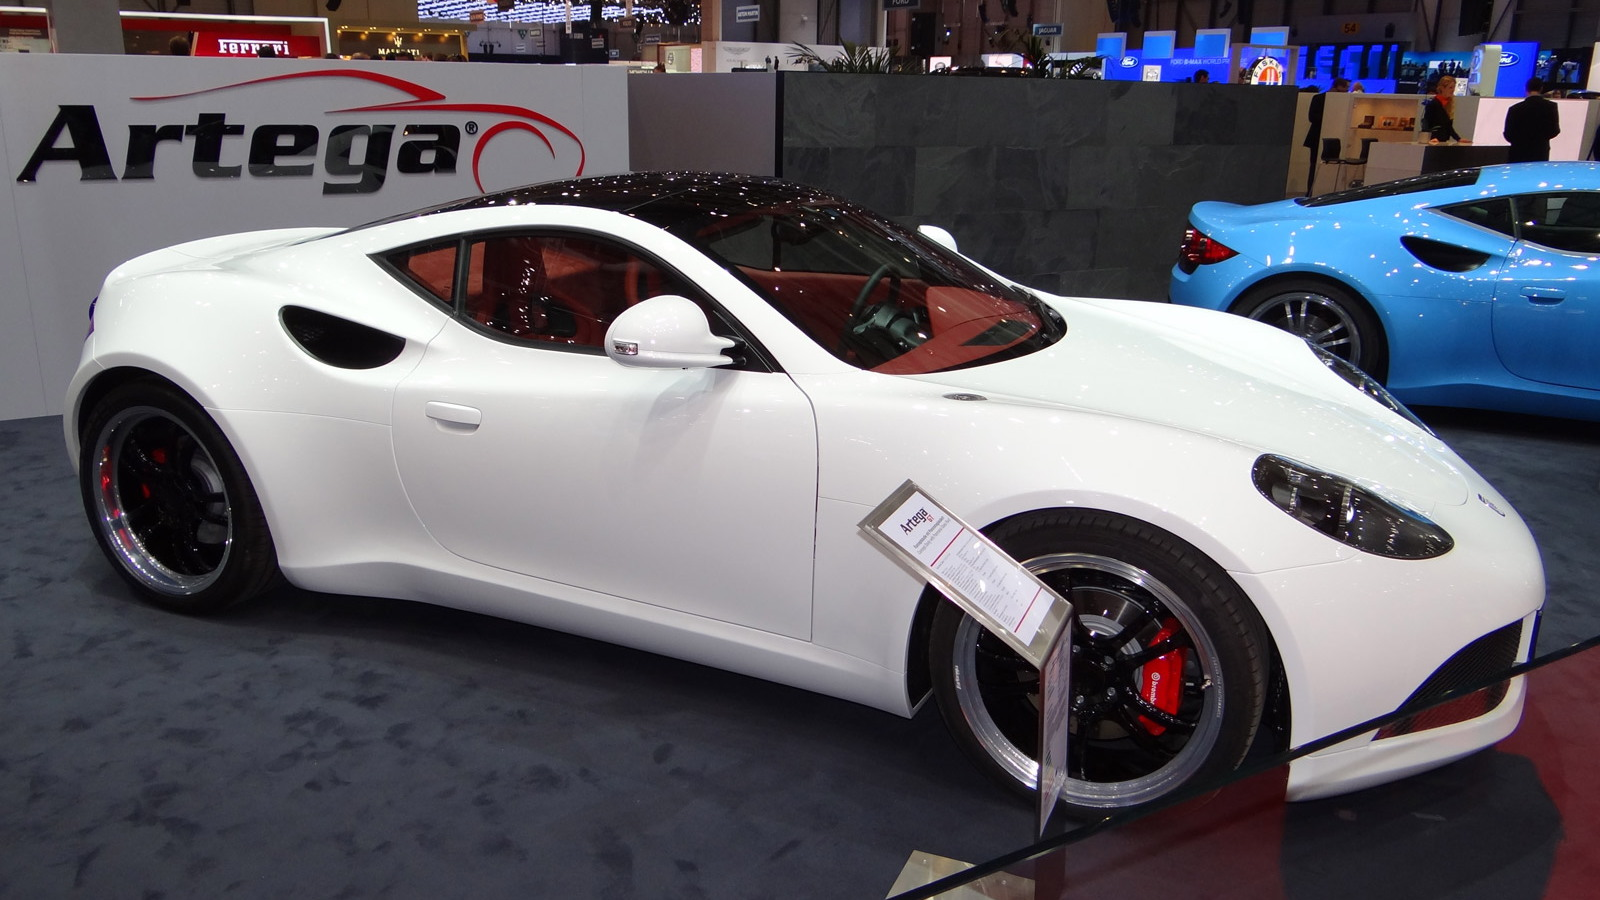 2012 Artega GT Concept featuring panoramic glass roof